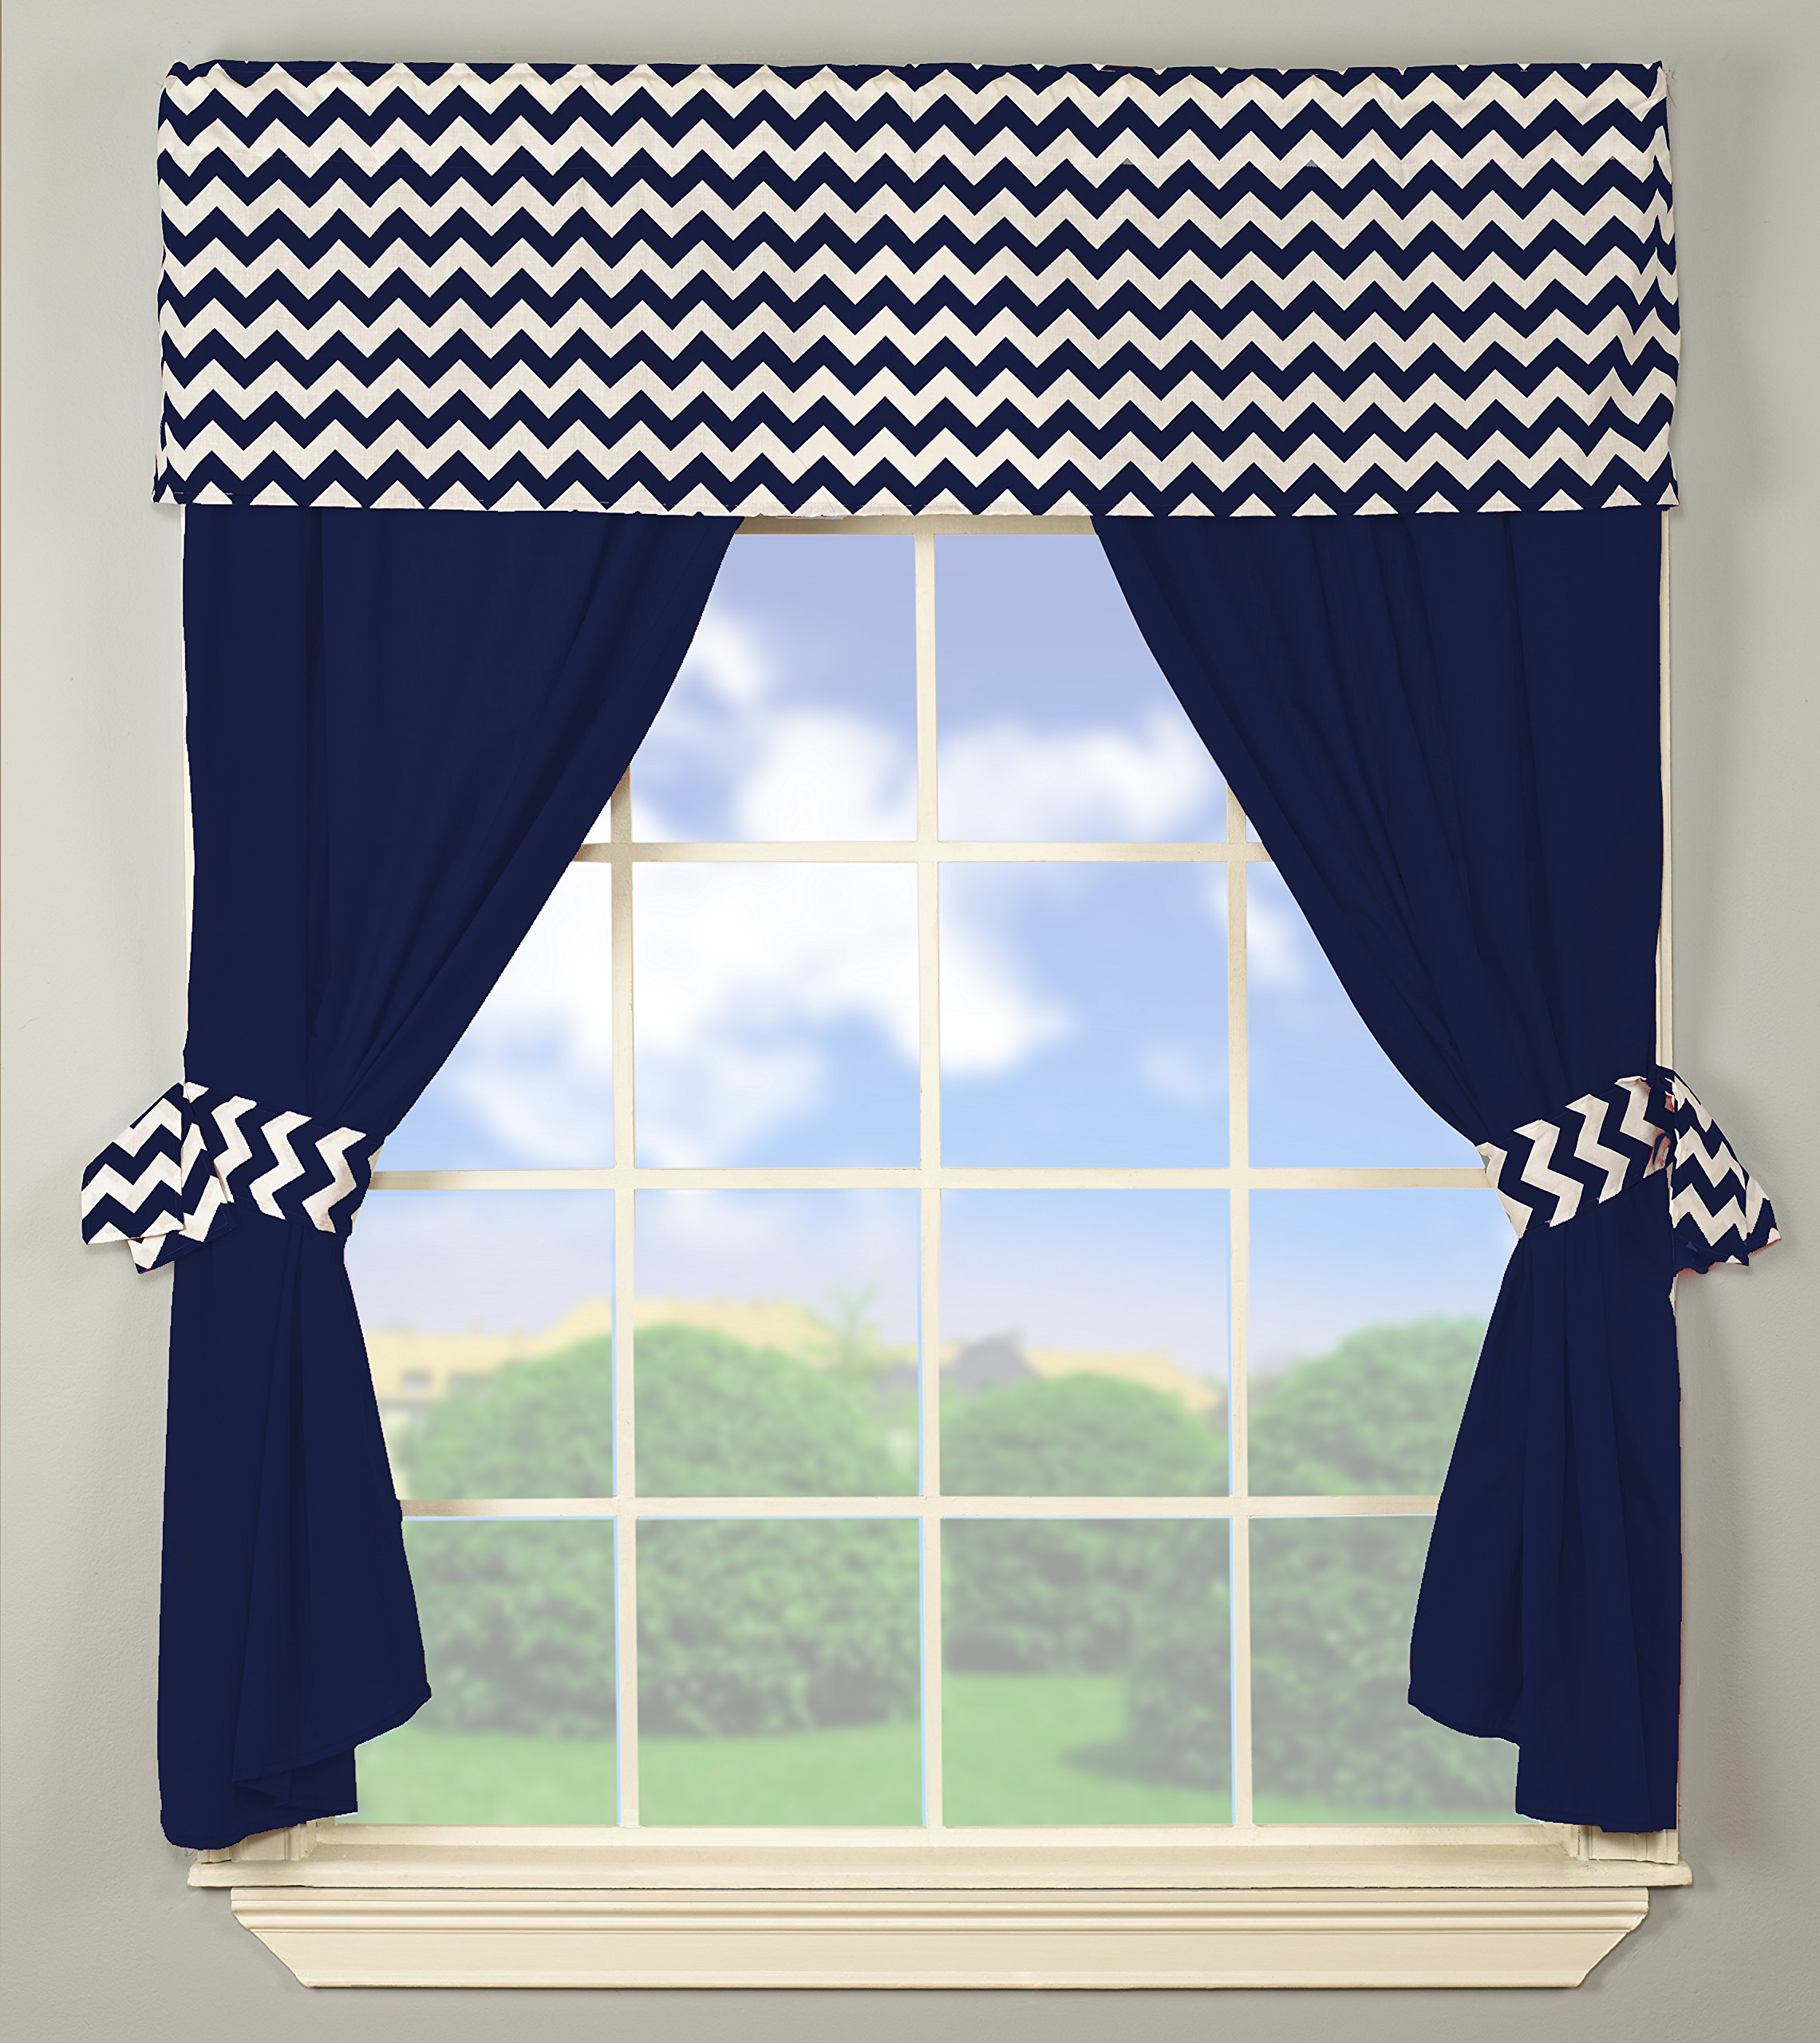 Baby Doll Bedding Chevron Window Valance and Curtain Set, Navy by BabyDoll Bedding